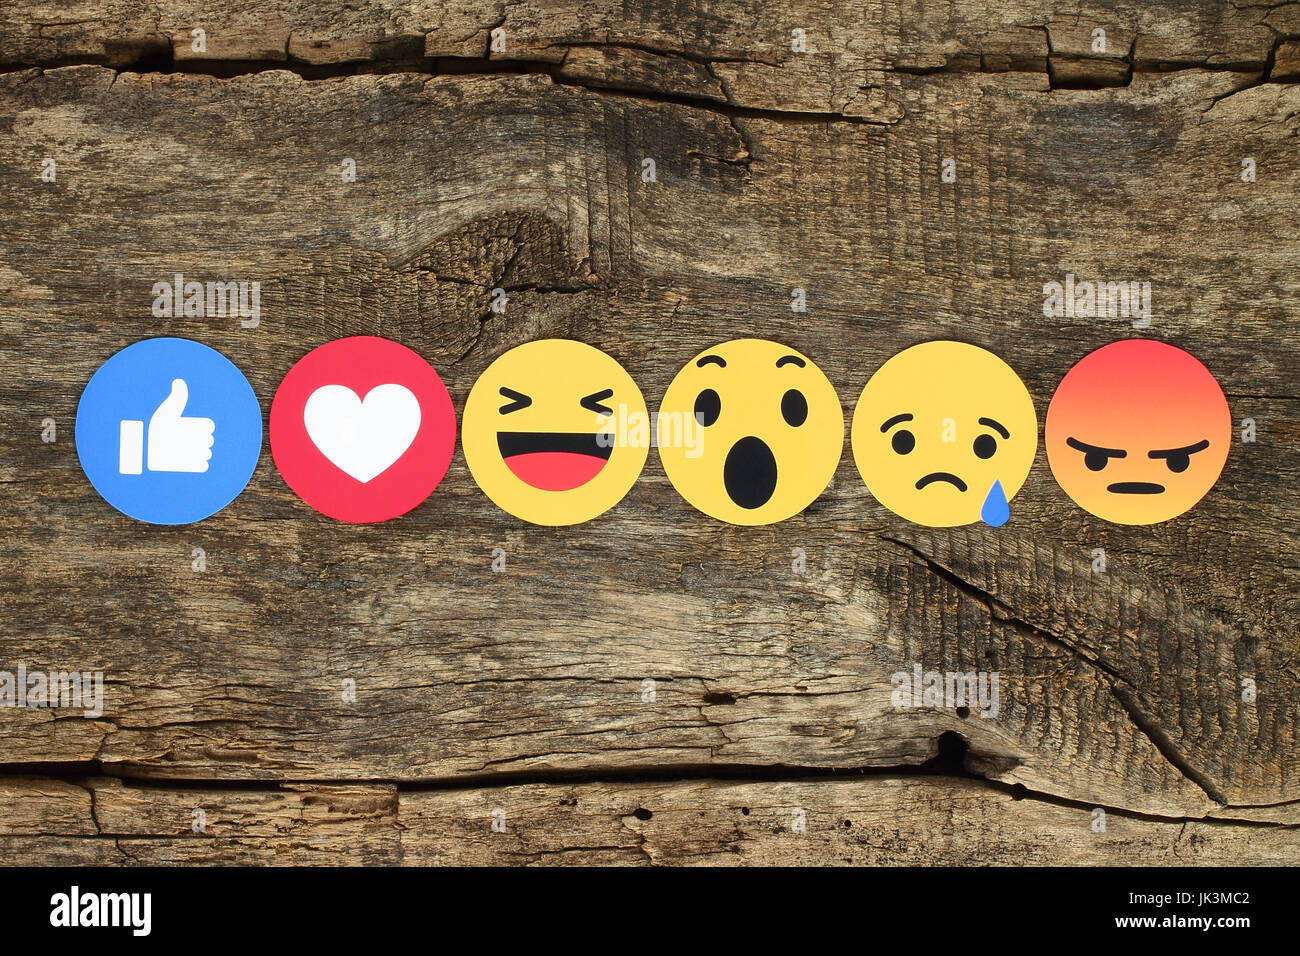 Kiev, Ukraine - February 07, 2017: Facebook like button 6 Empathetic Emoji Reactions printed on paper and placed - Stock Image